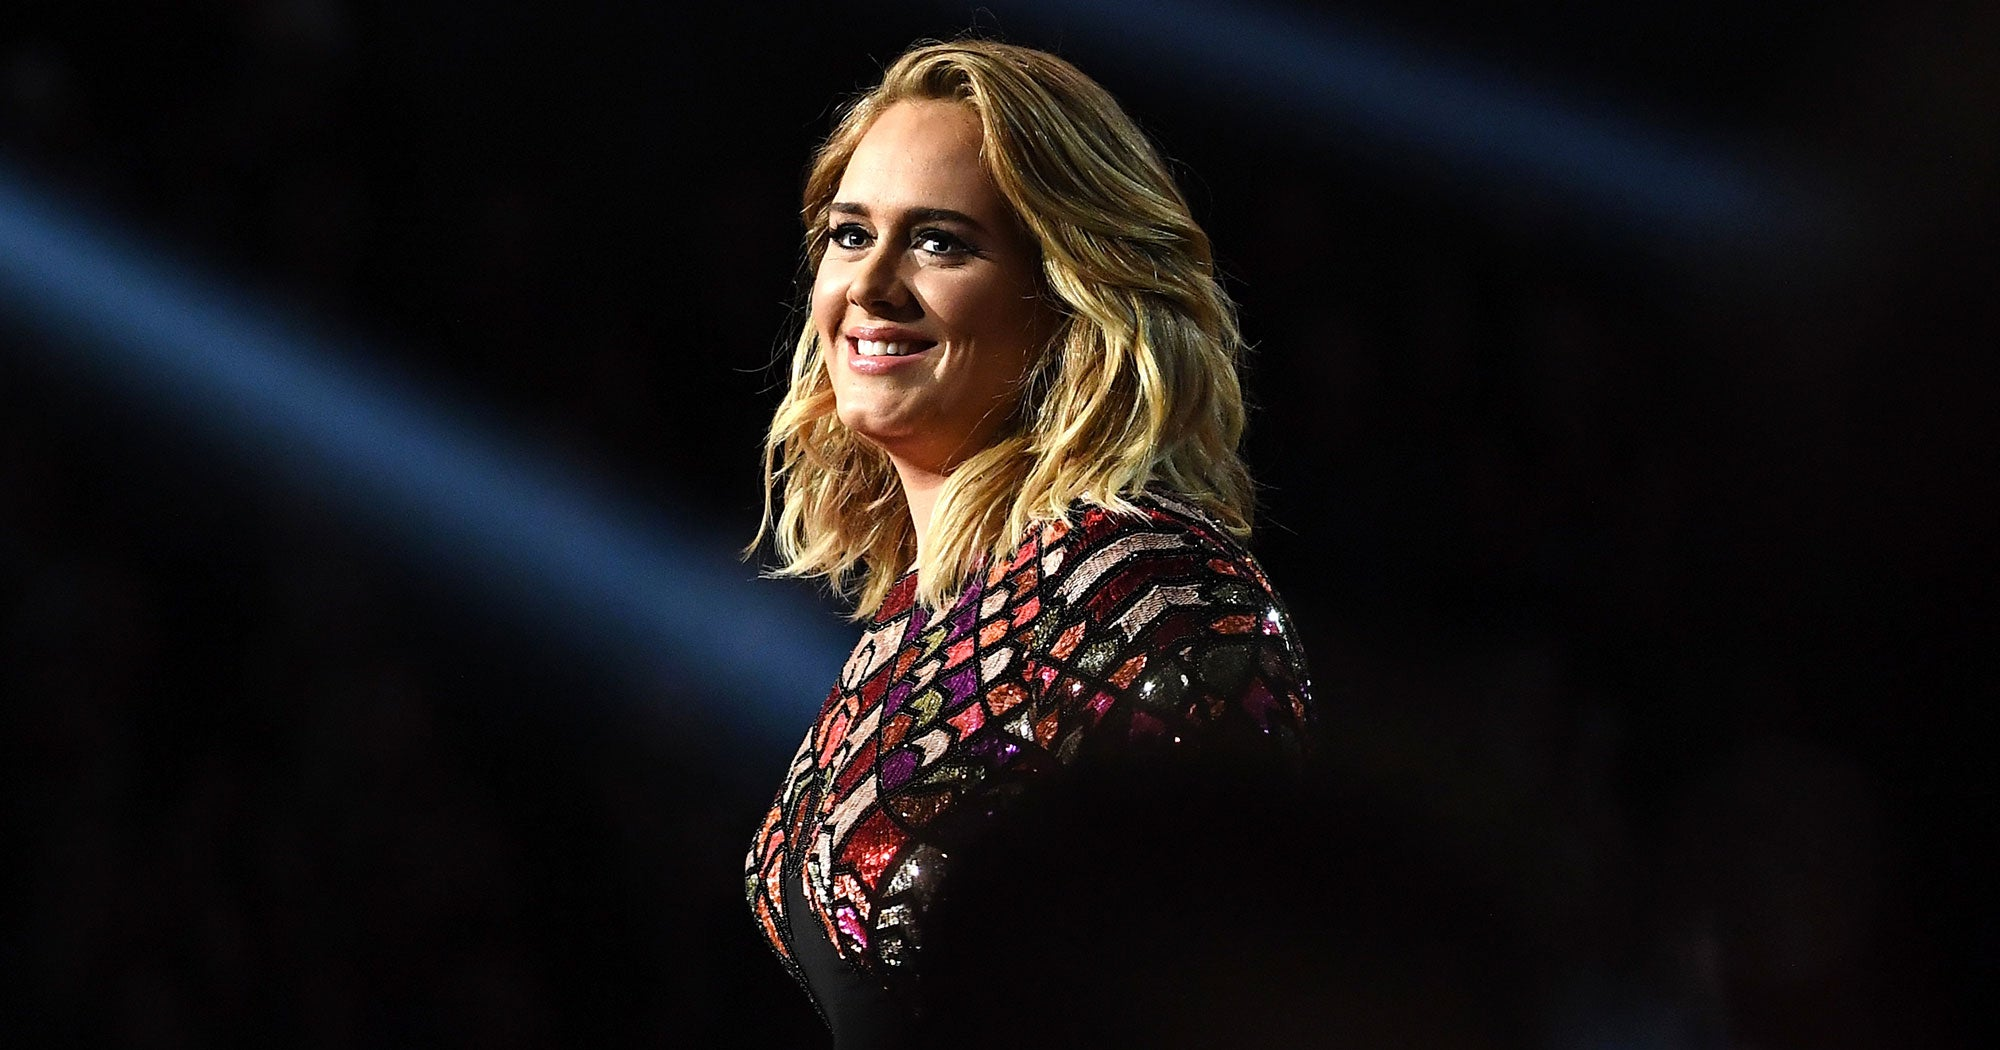 Adele Had The Time Of Her Life Singing At Her BFF's Wedding